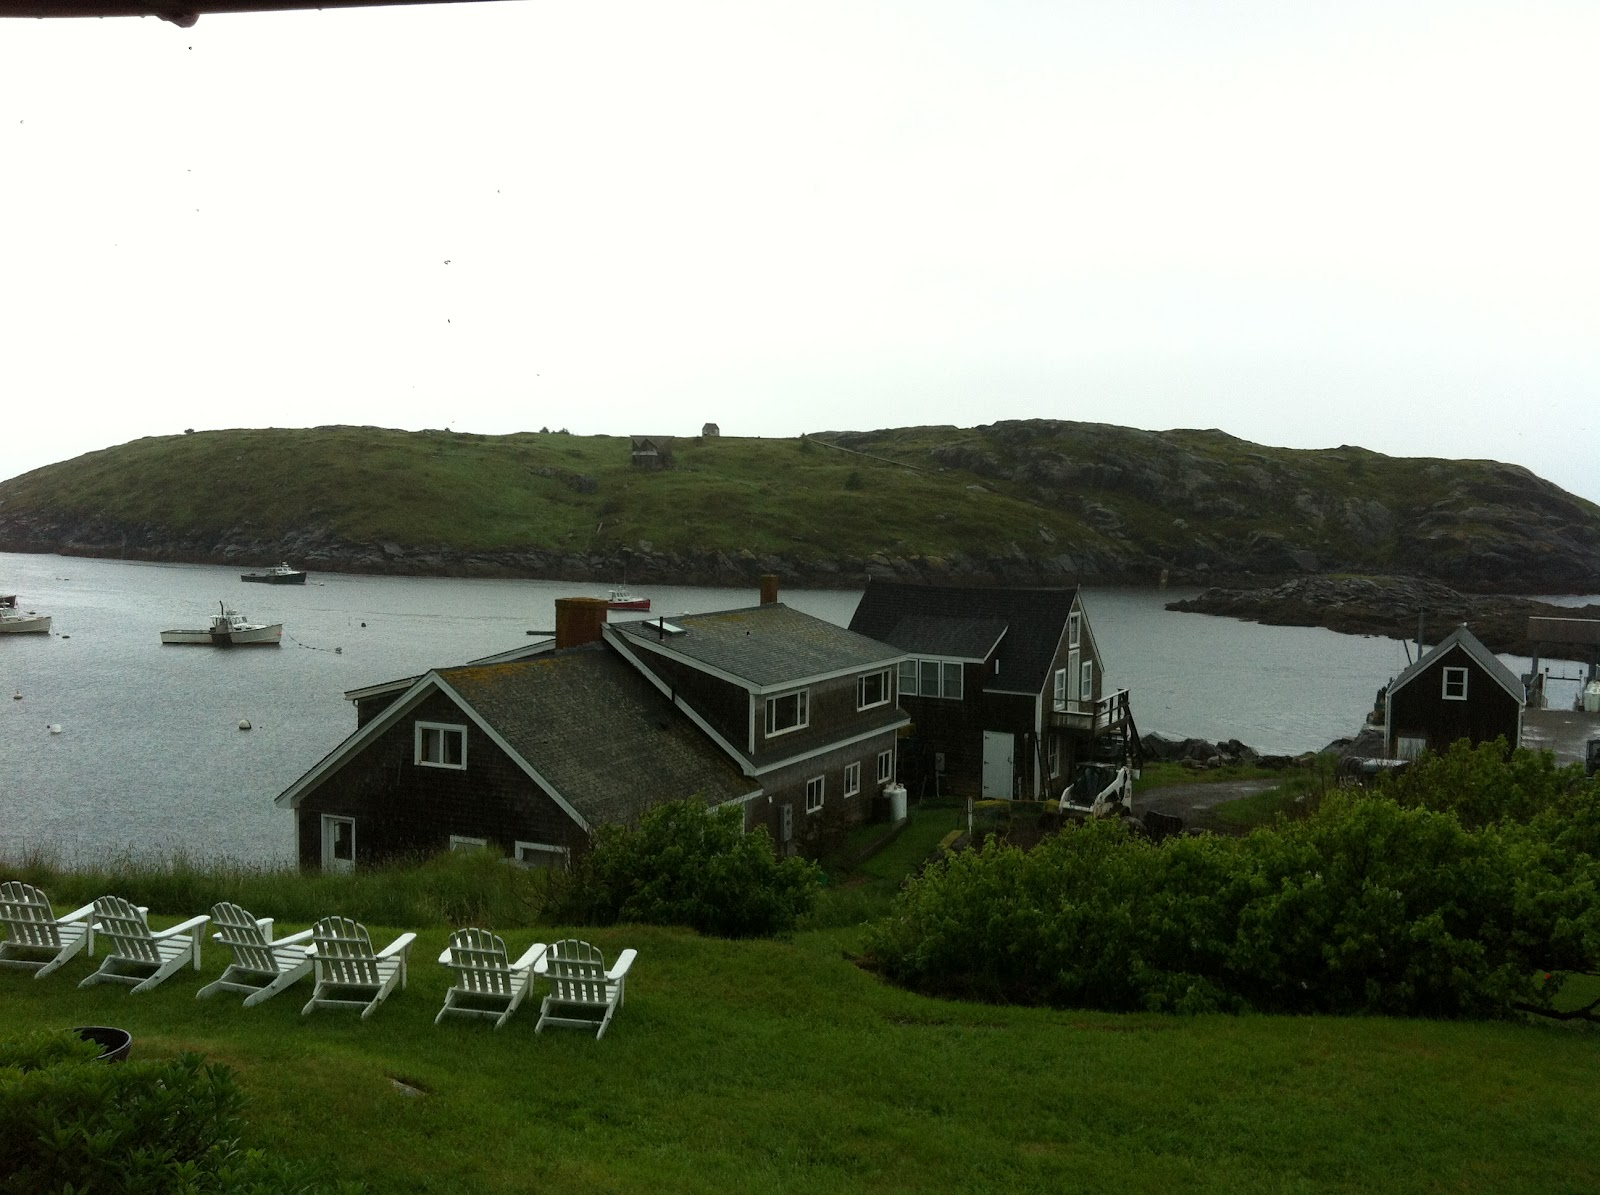 monhegan divorced singles However, under rise it states that he married kate harkin on july 2, 1944, the year before it says he was divorced -- kokopelli jones good catch they divorced in 1944 so that mostel could marry kate clara was reluctant and only agreed to the divorce in return to a percentage of mostel's earnings for the rest of his life.